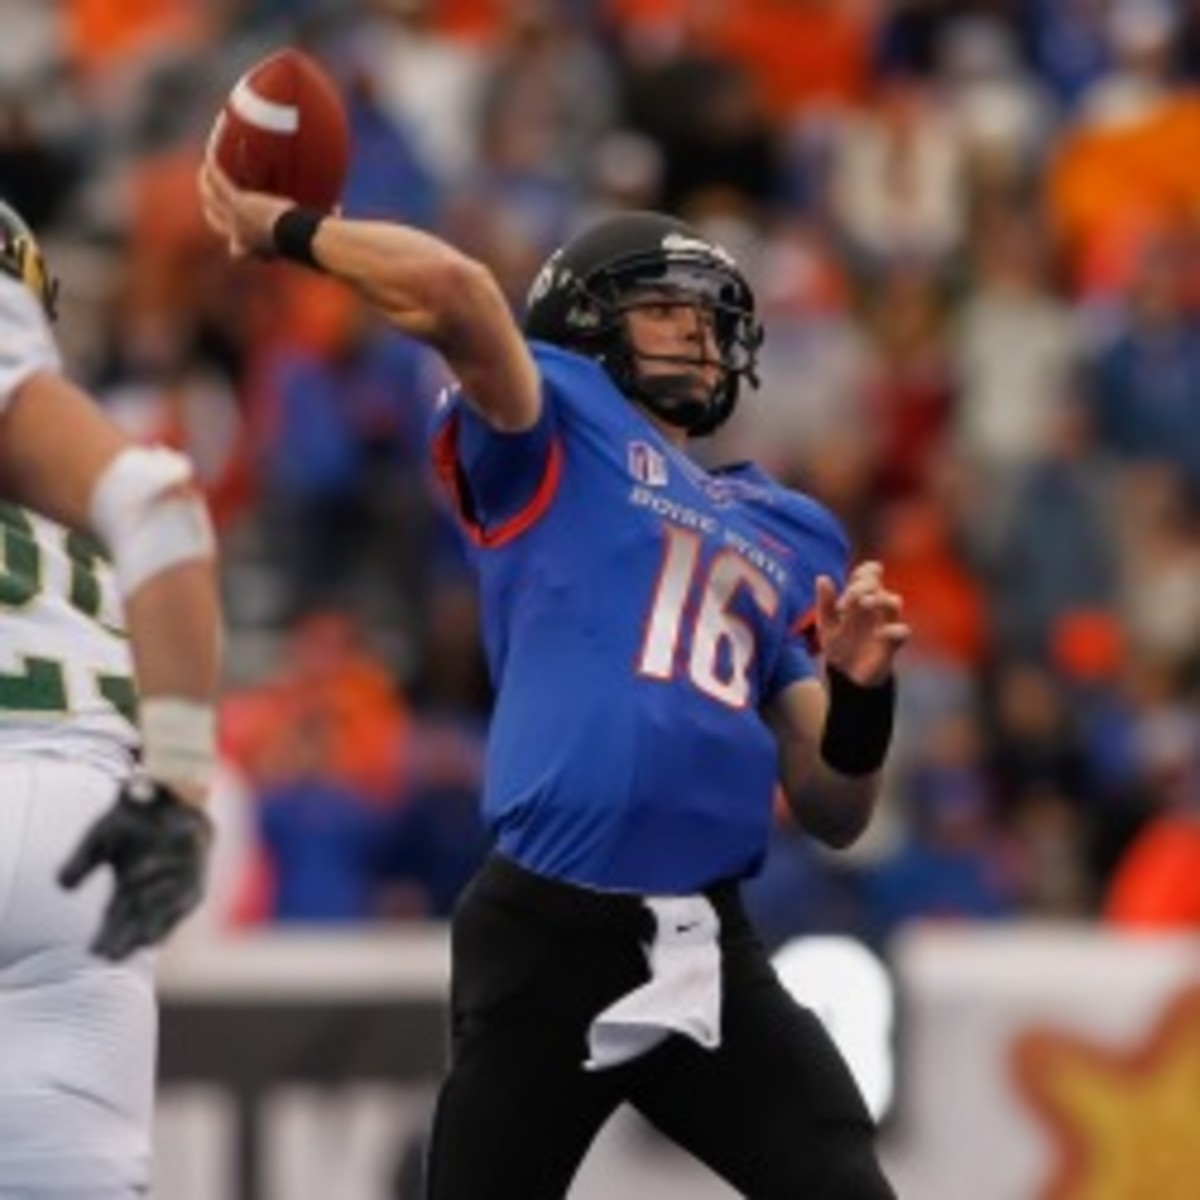 The Pac-12 isn't ready to expand, but Boise State might be on their radar if they do. (Otto Kitsinger III/Getty Images)